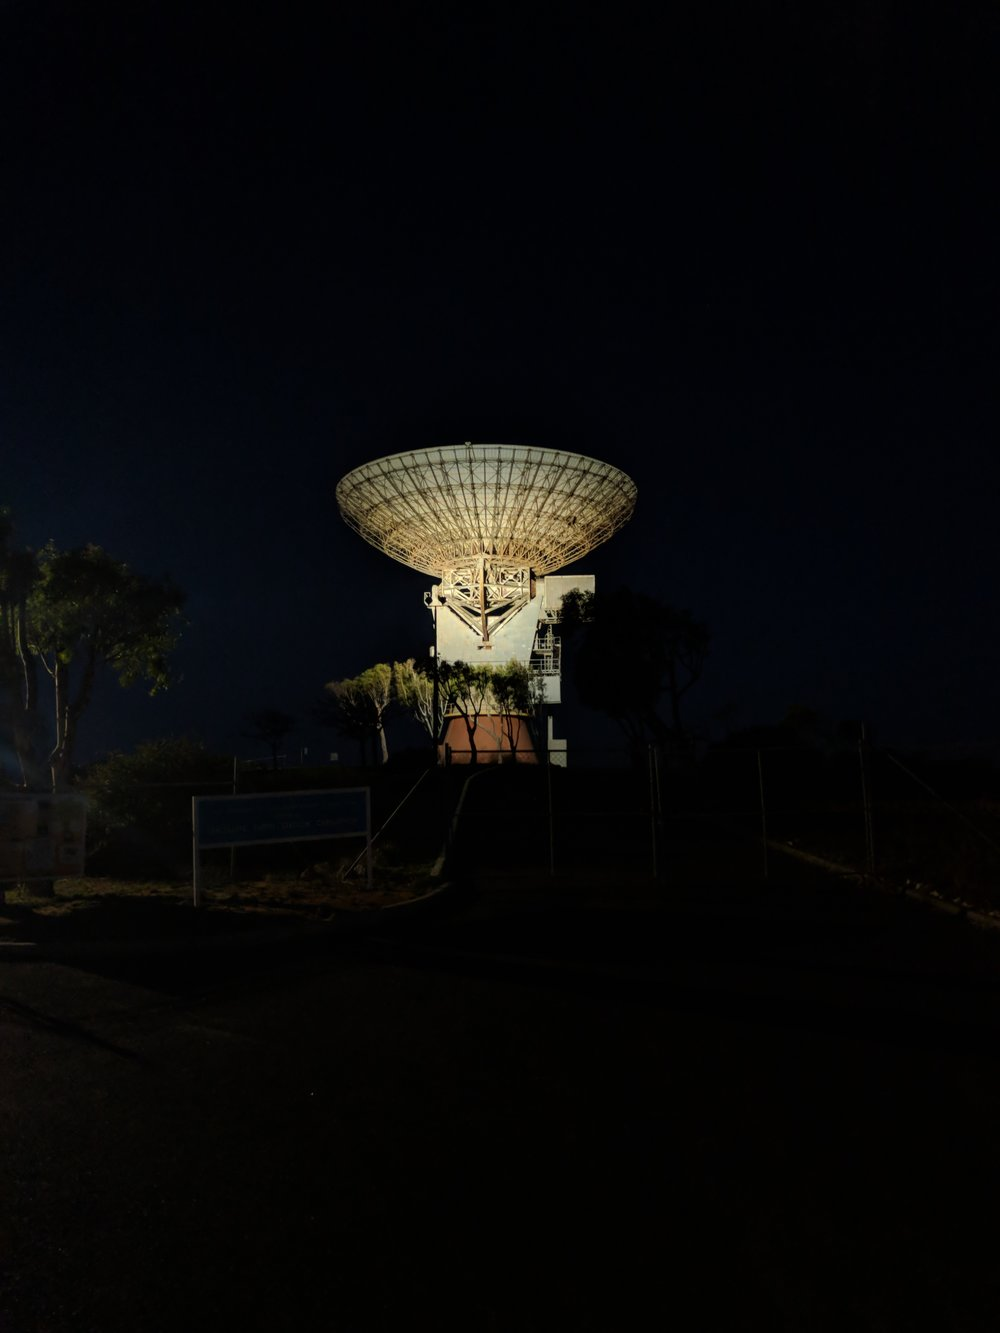 The OTC dish by night, uplighting done right!